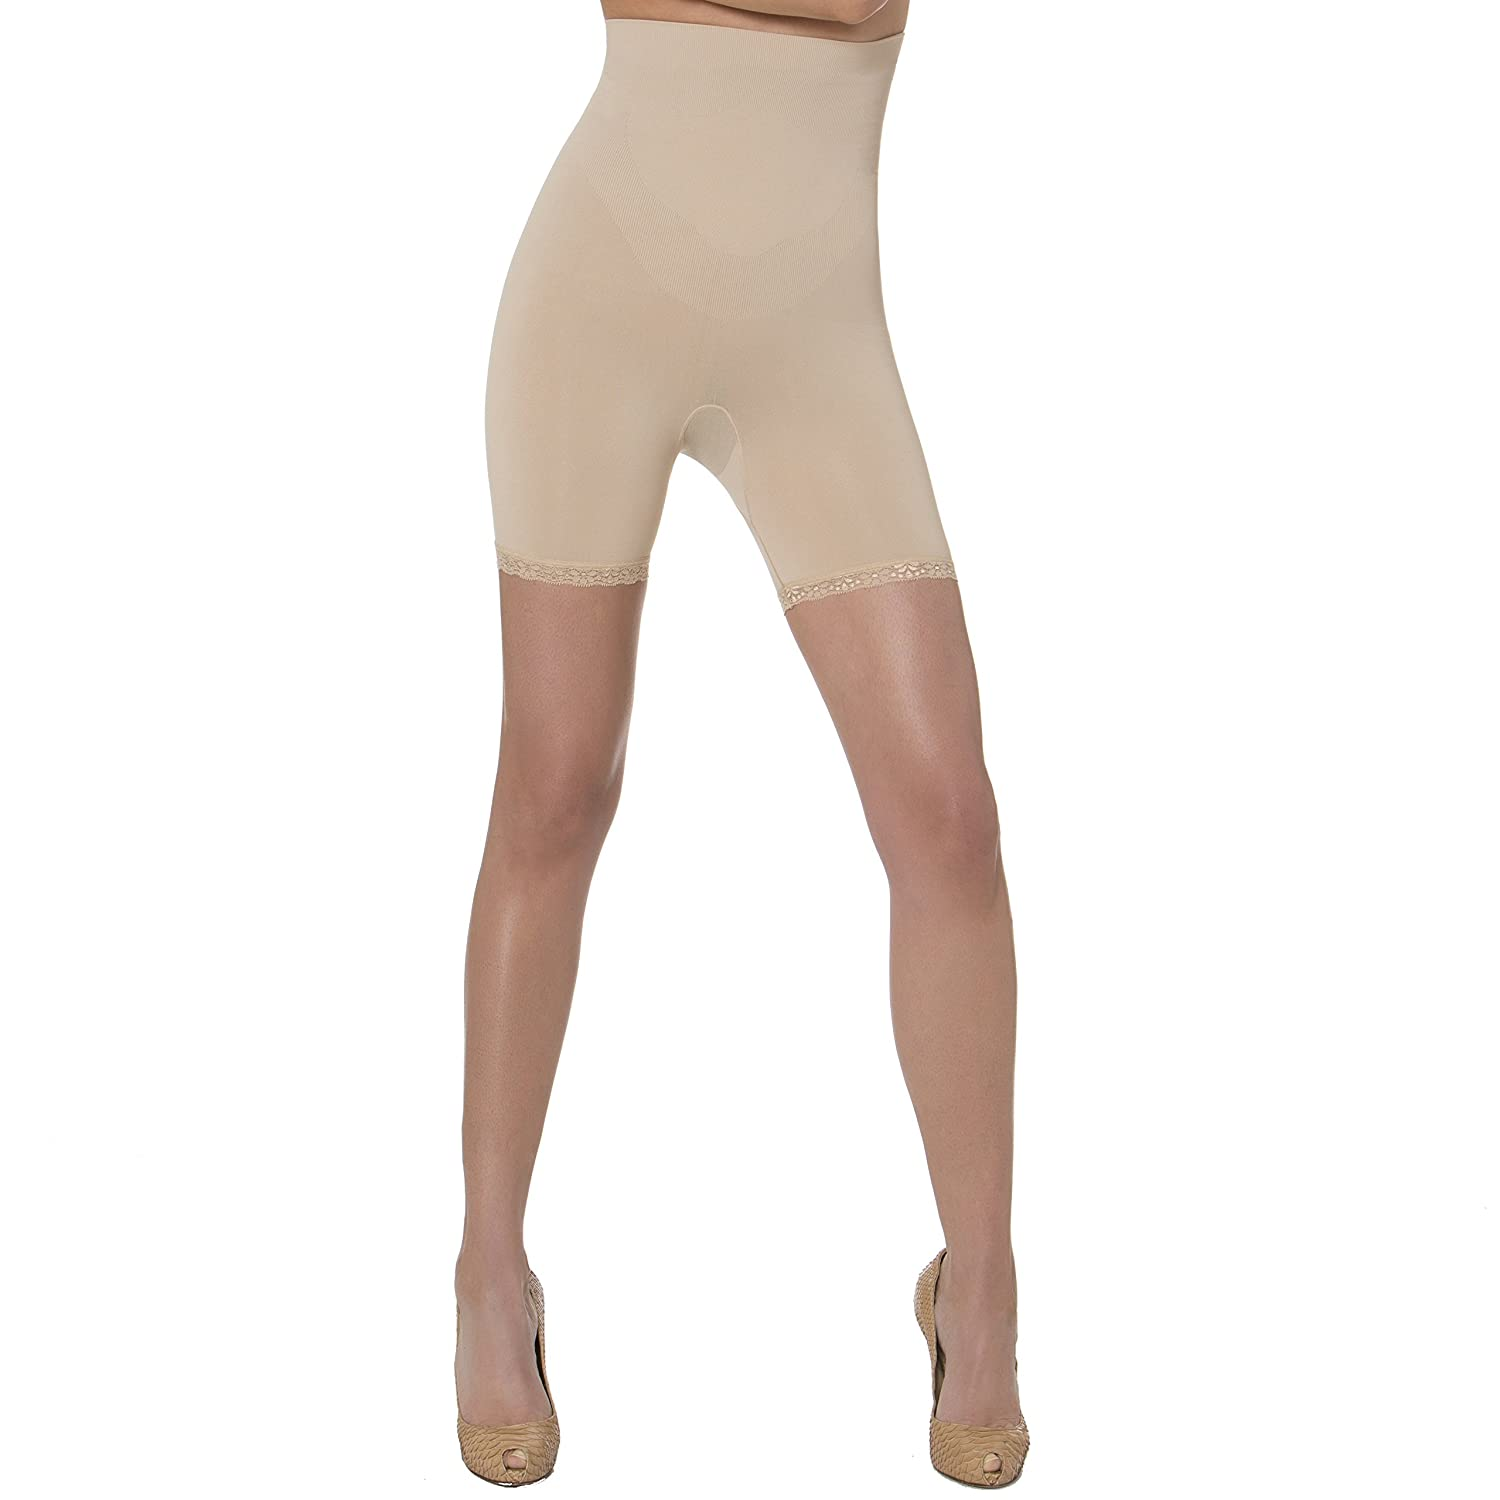 bb1554d30a N-Fini Aha Moment High Rise Anti-Cellulite Short with Lace Trim 1182 Nude -  3X-4X at Amazon Women s Clothing store